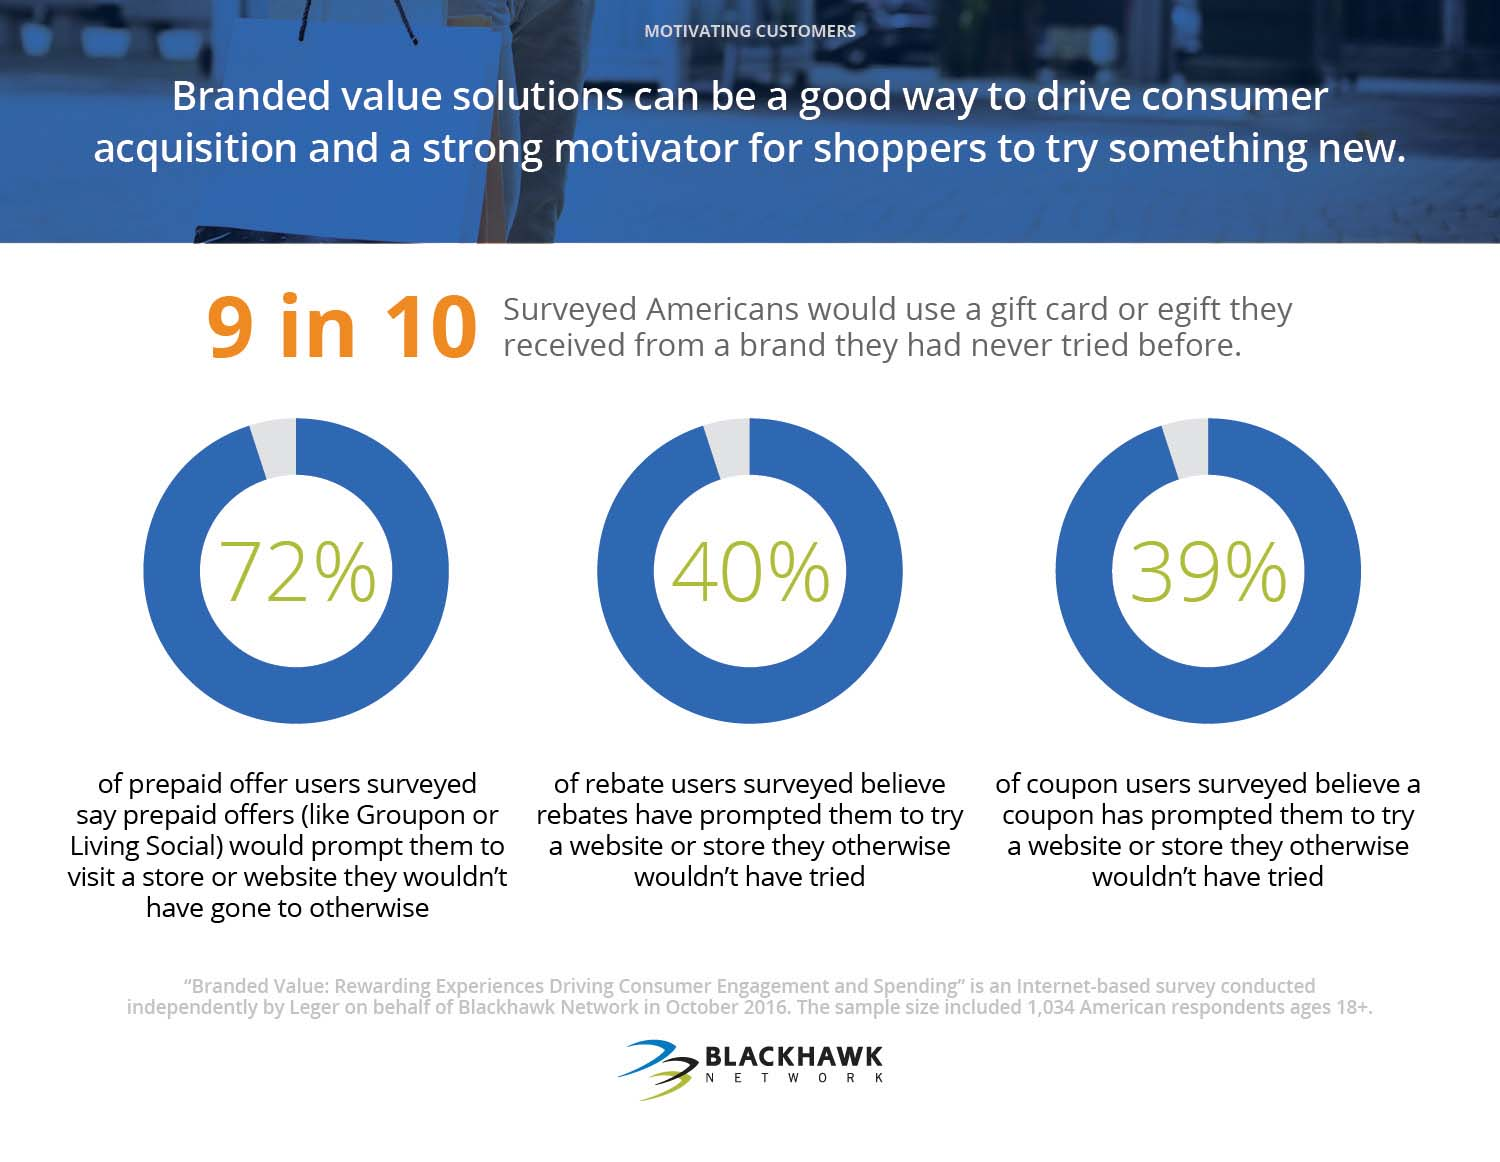 Branded value solutions can be a good way to drive consumer acquisition and a strong motivator for shoppers to try something new.